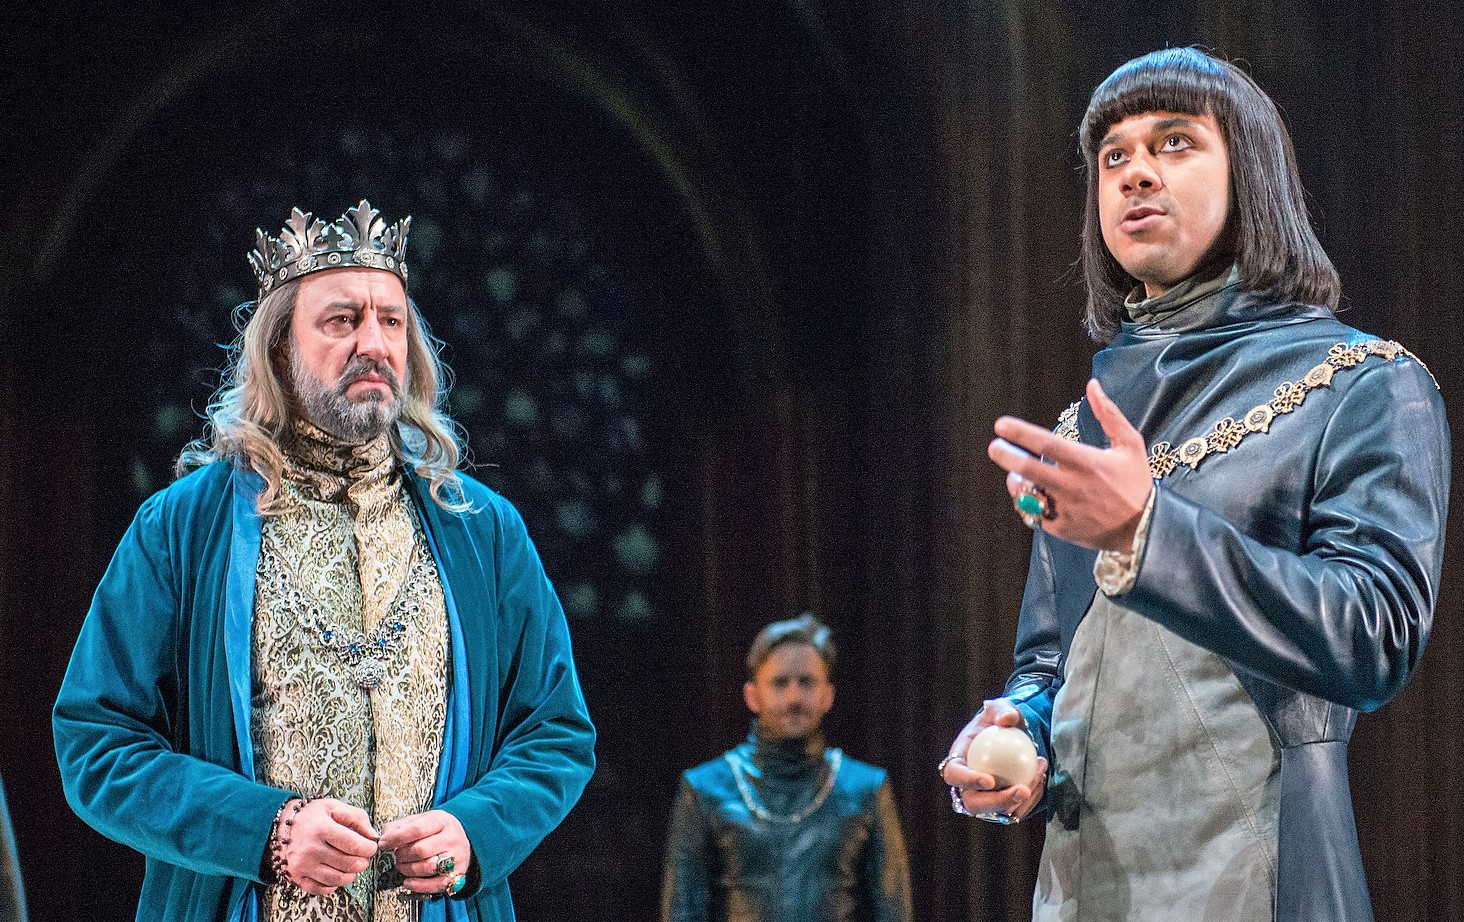 Simon Thorp (left) is the King of France, Sam Marks (upstage) is the Constable, and Robert Gilbert is the Dauphin opposing Henry.